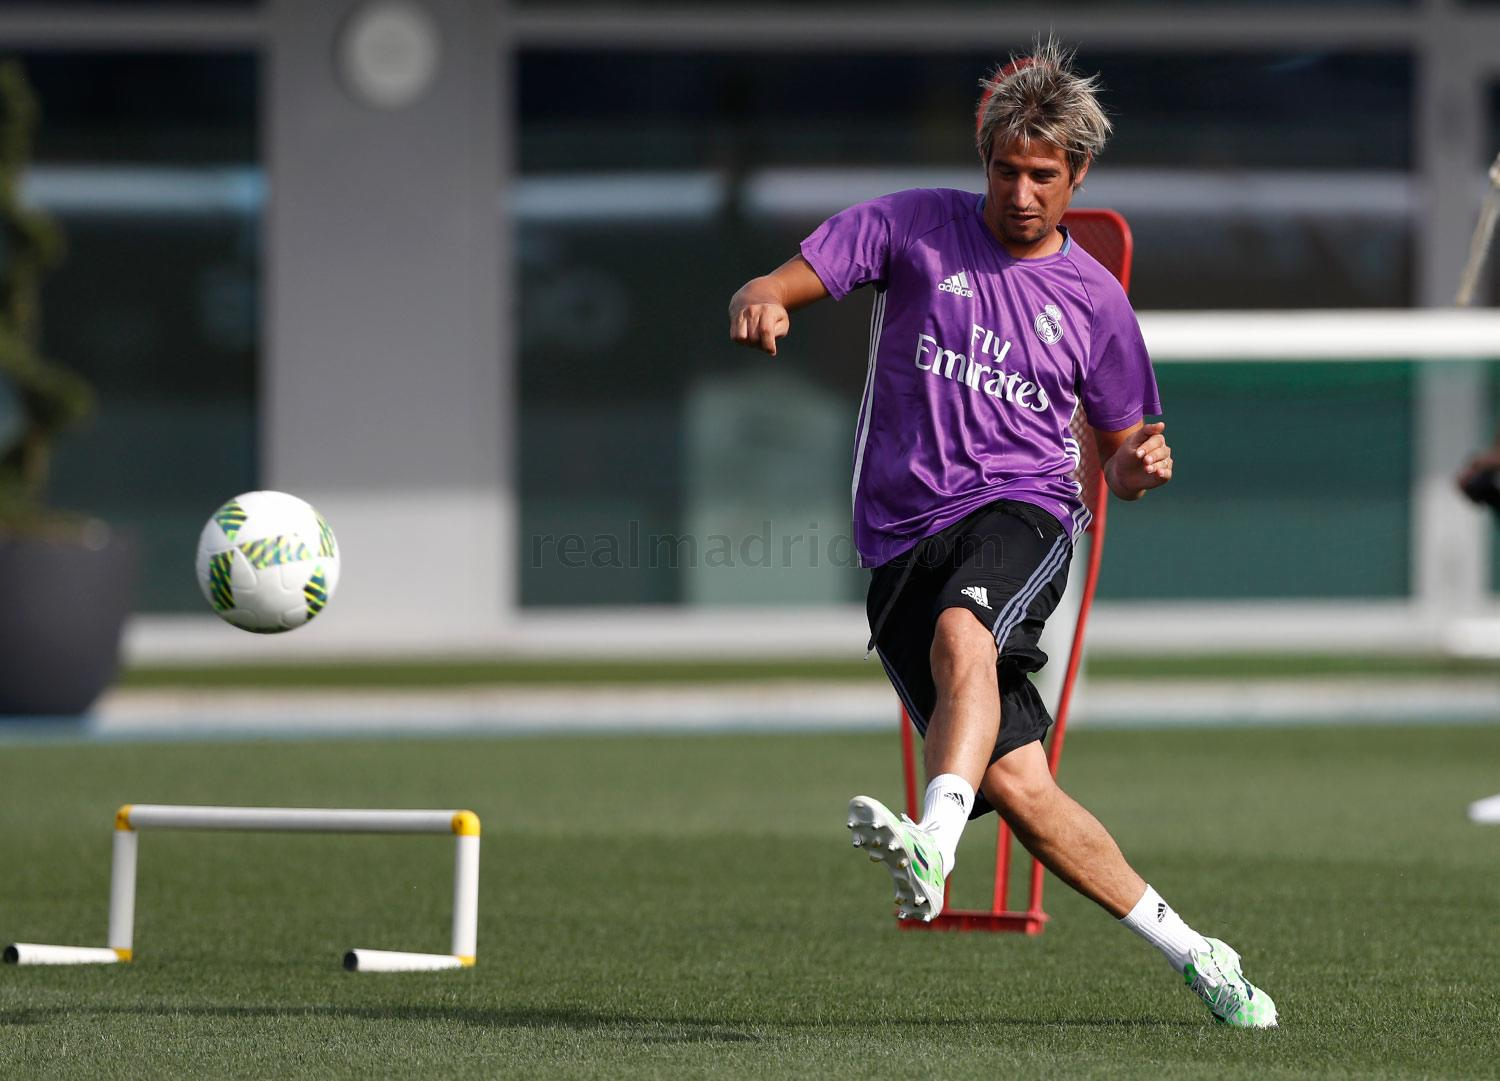 Real Madrid - Entrenamiento del Real Madrid - 05-09-2016